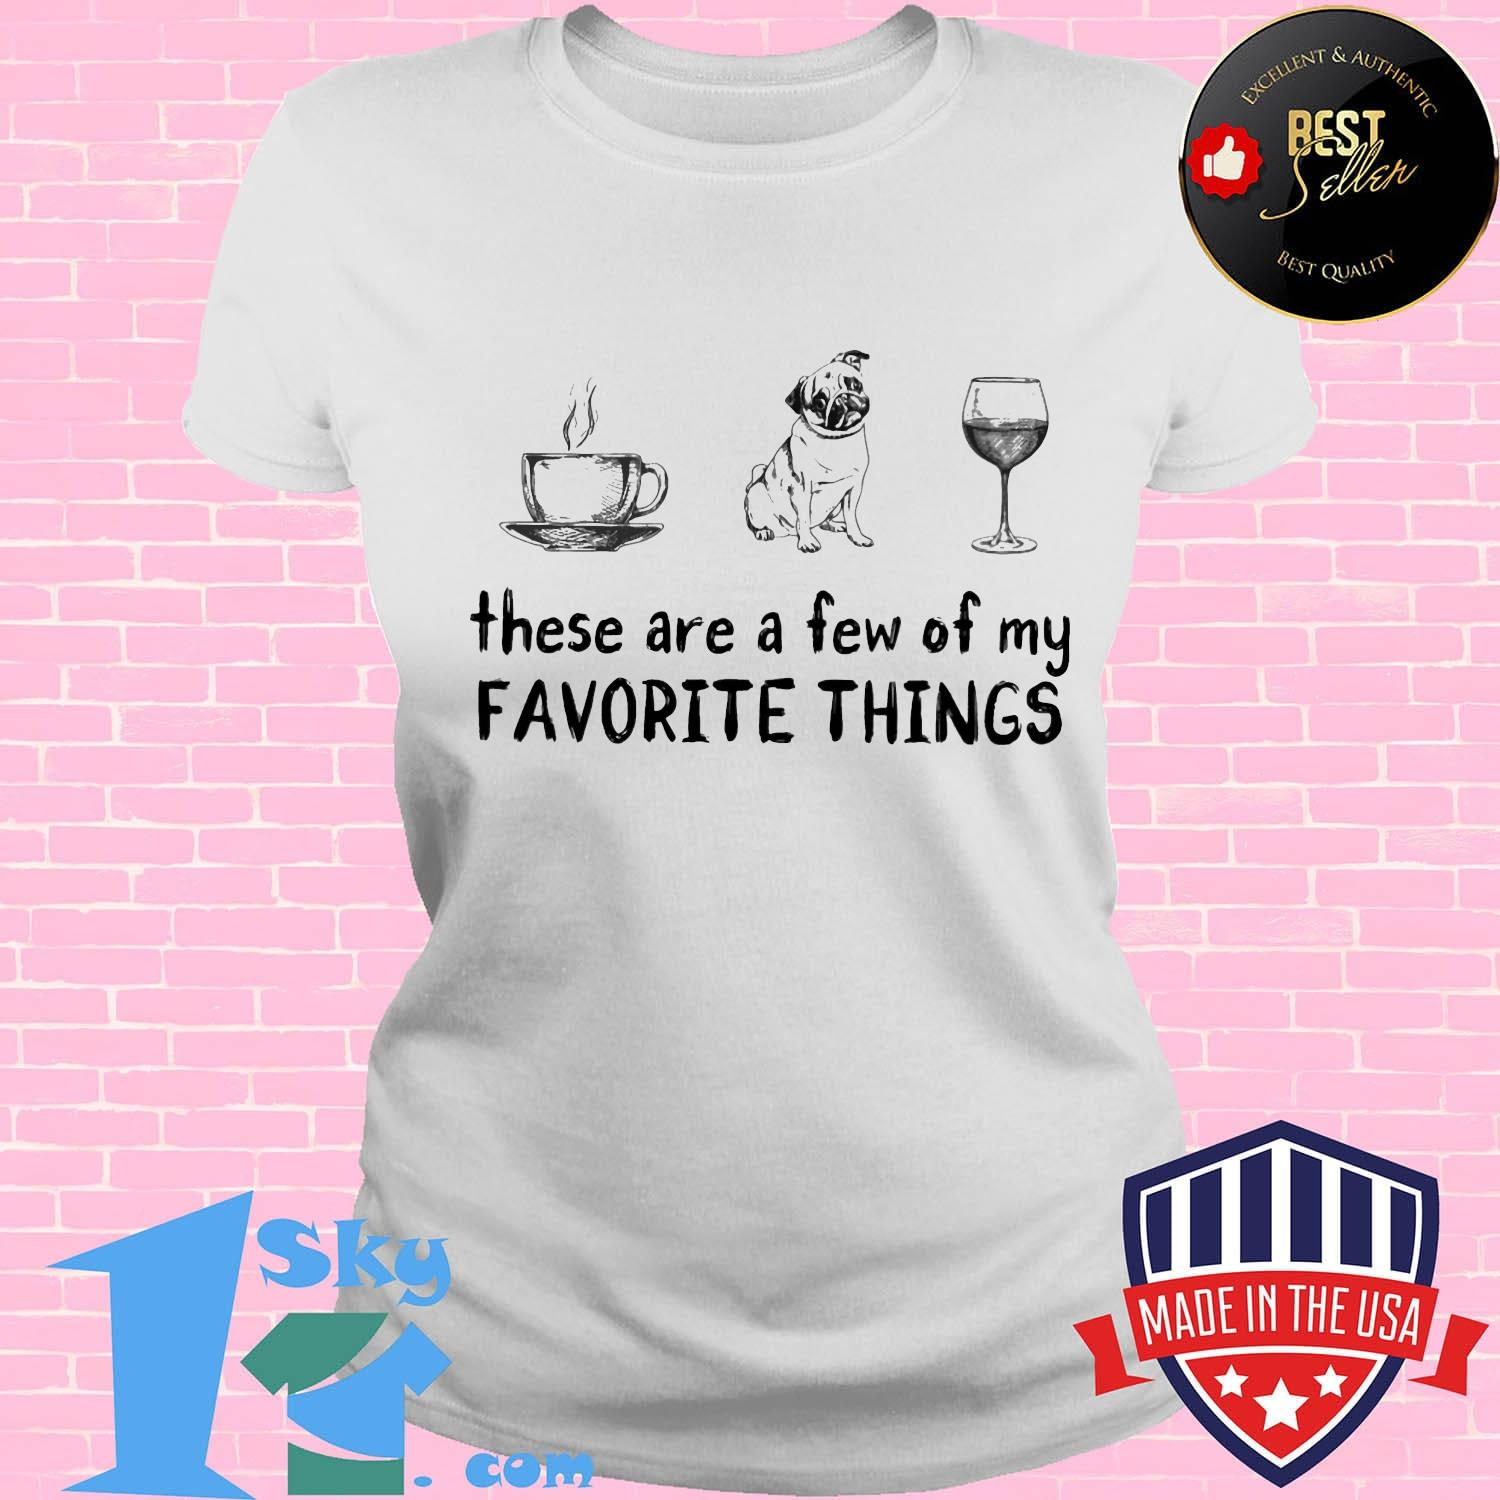 These are a few of my favorite things coffee pug and wine shirt